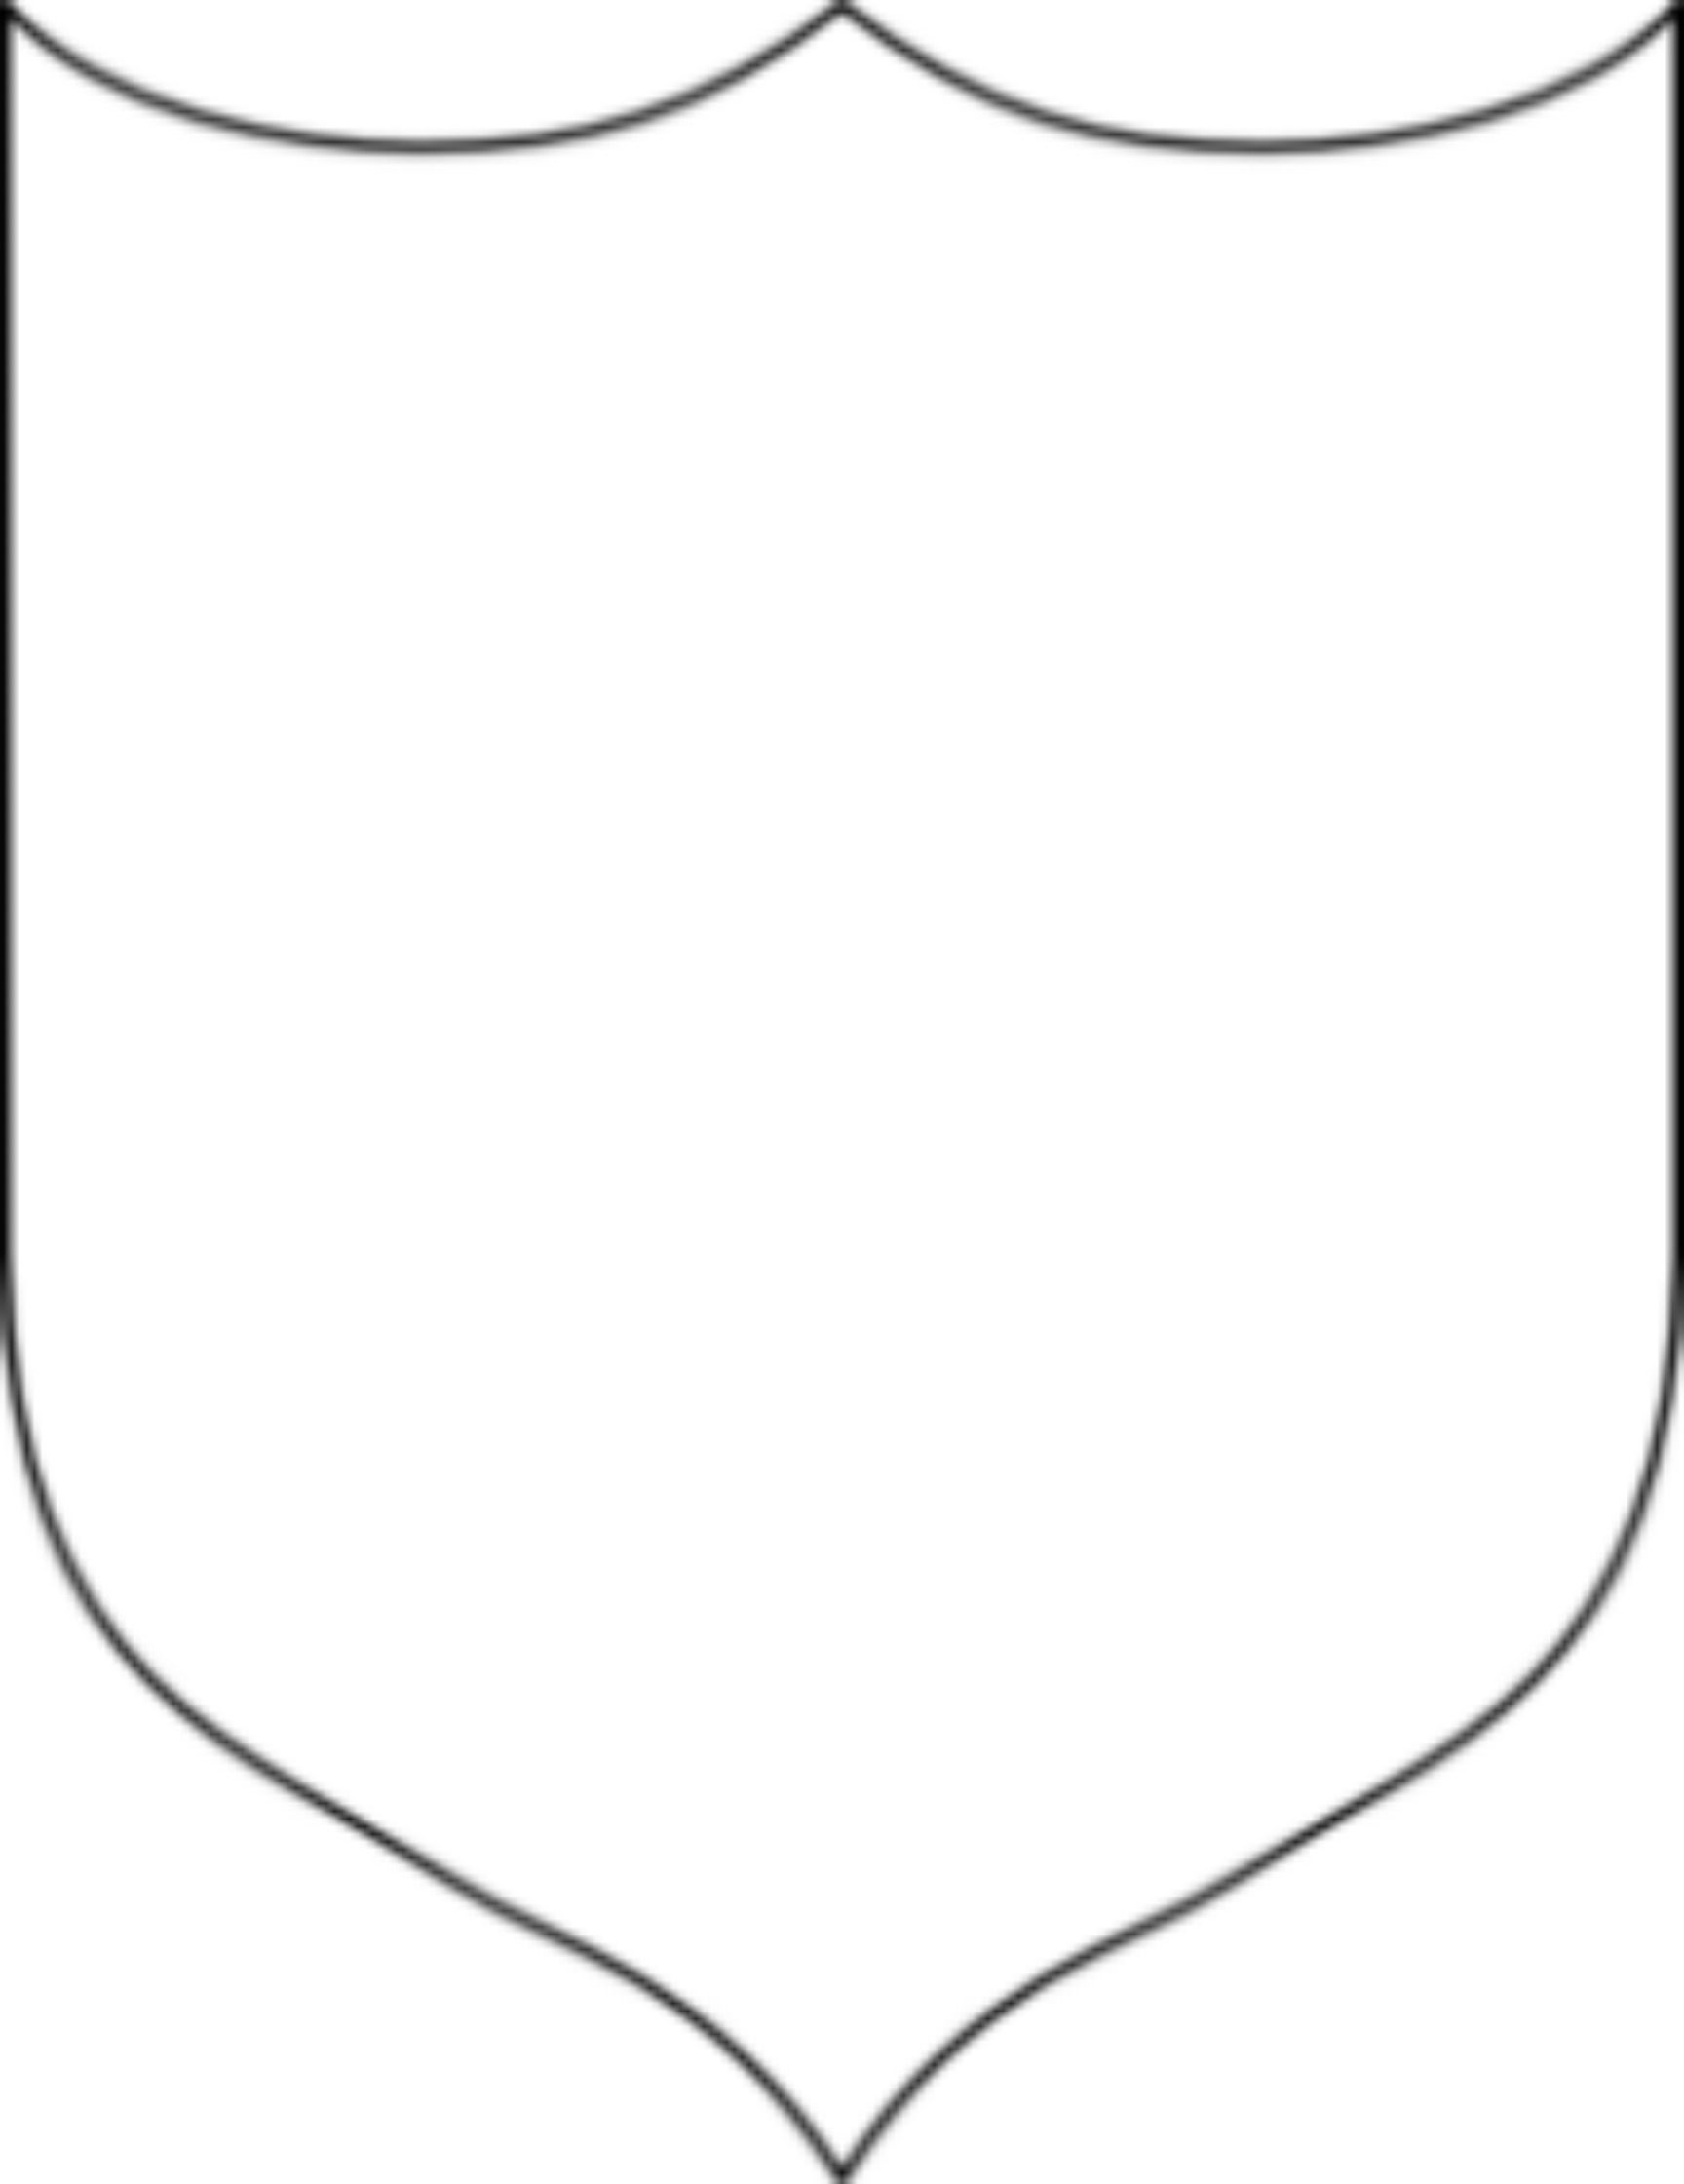 shield coloring page shield coloring pages clipart best page shield coloring 1 1